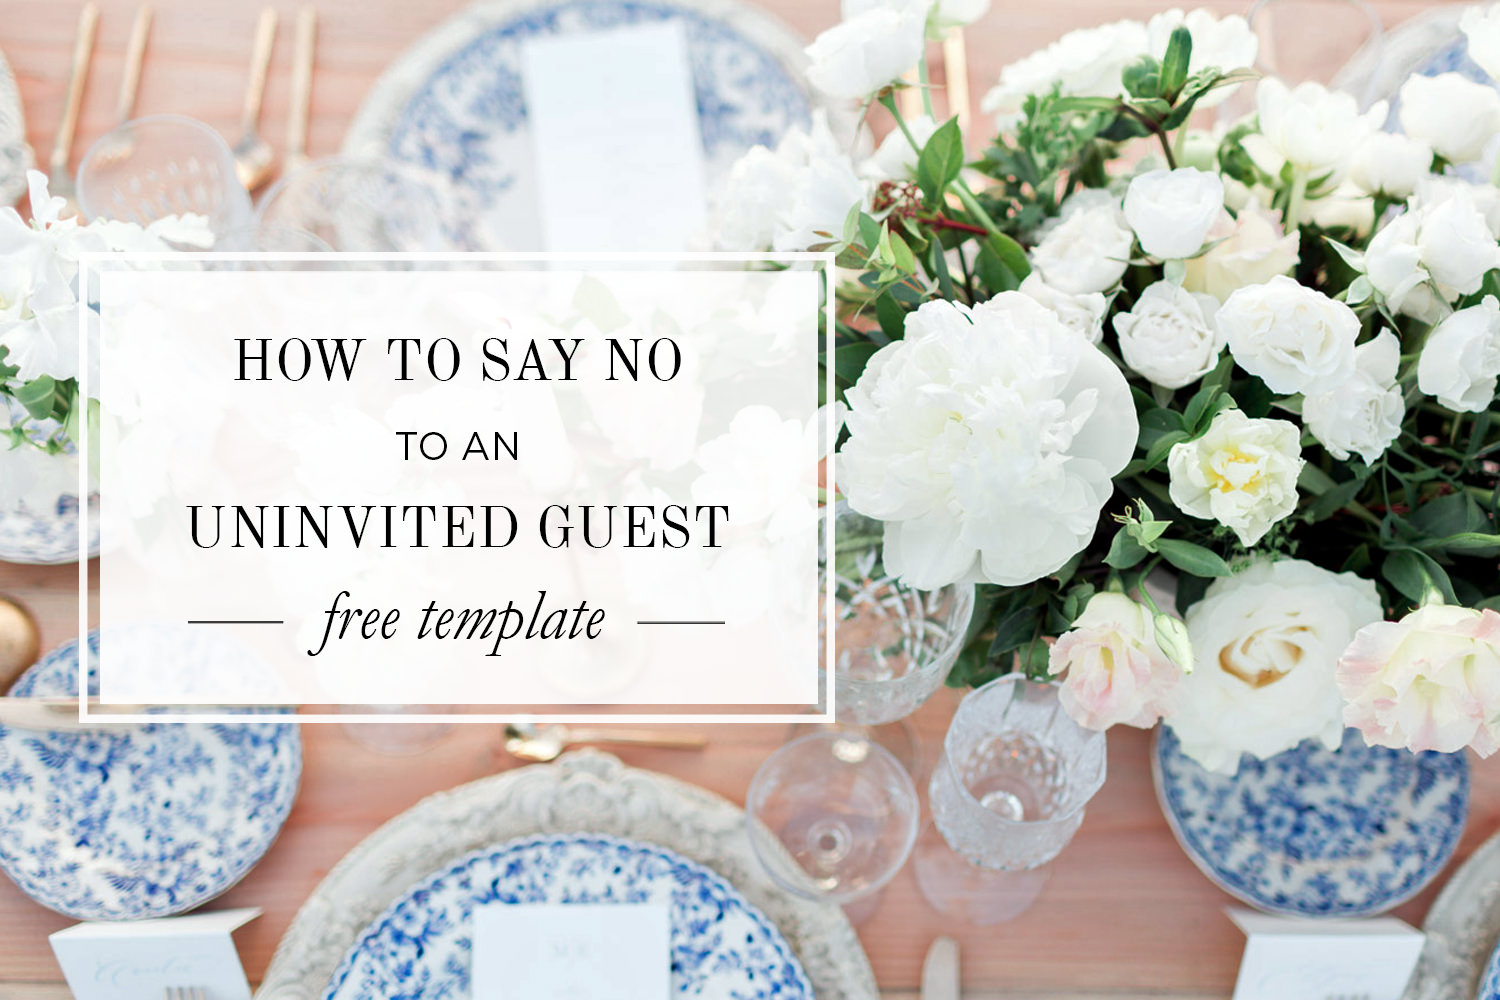 How to Tell an Uninvited Guest They Can't Attend the Wedding